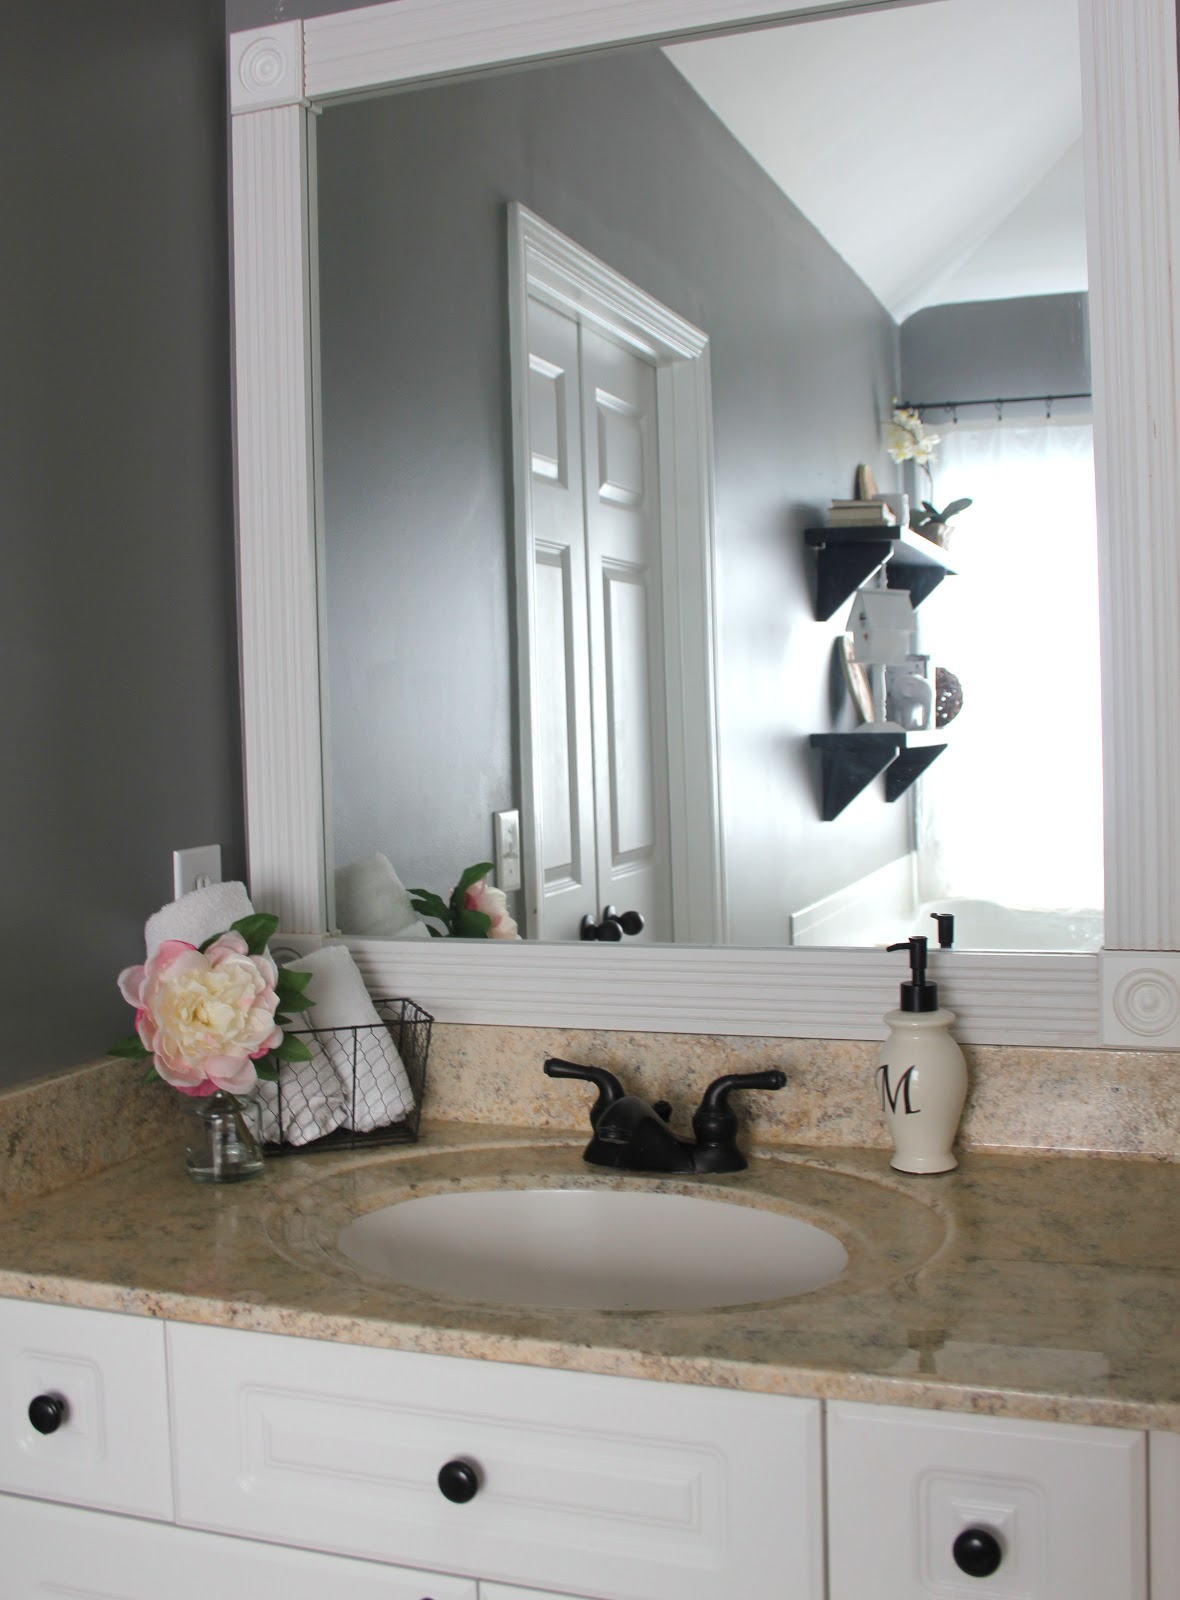 My enroute life framimg our master bathroom builder grade for Large flat bathroom mirrors